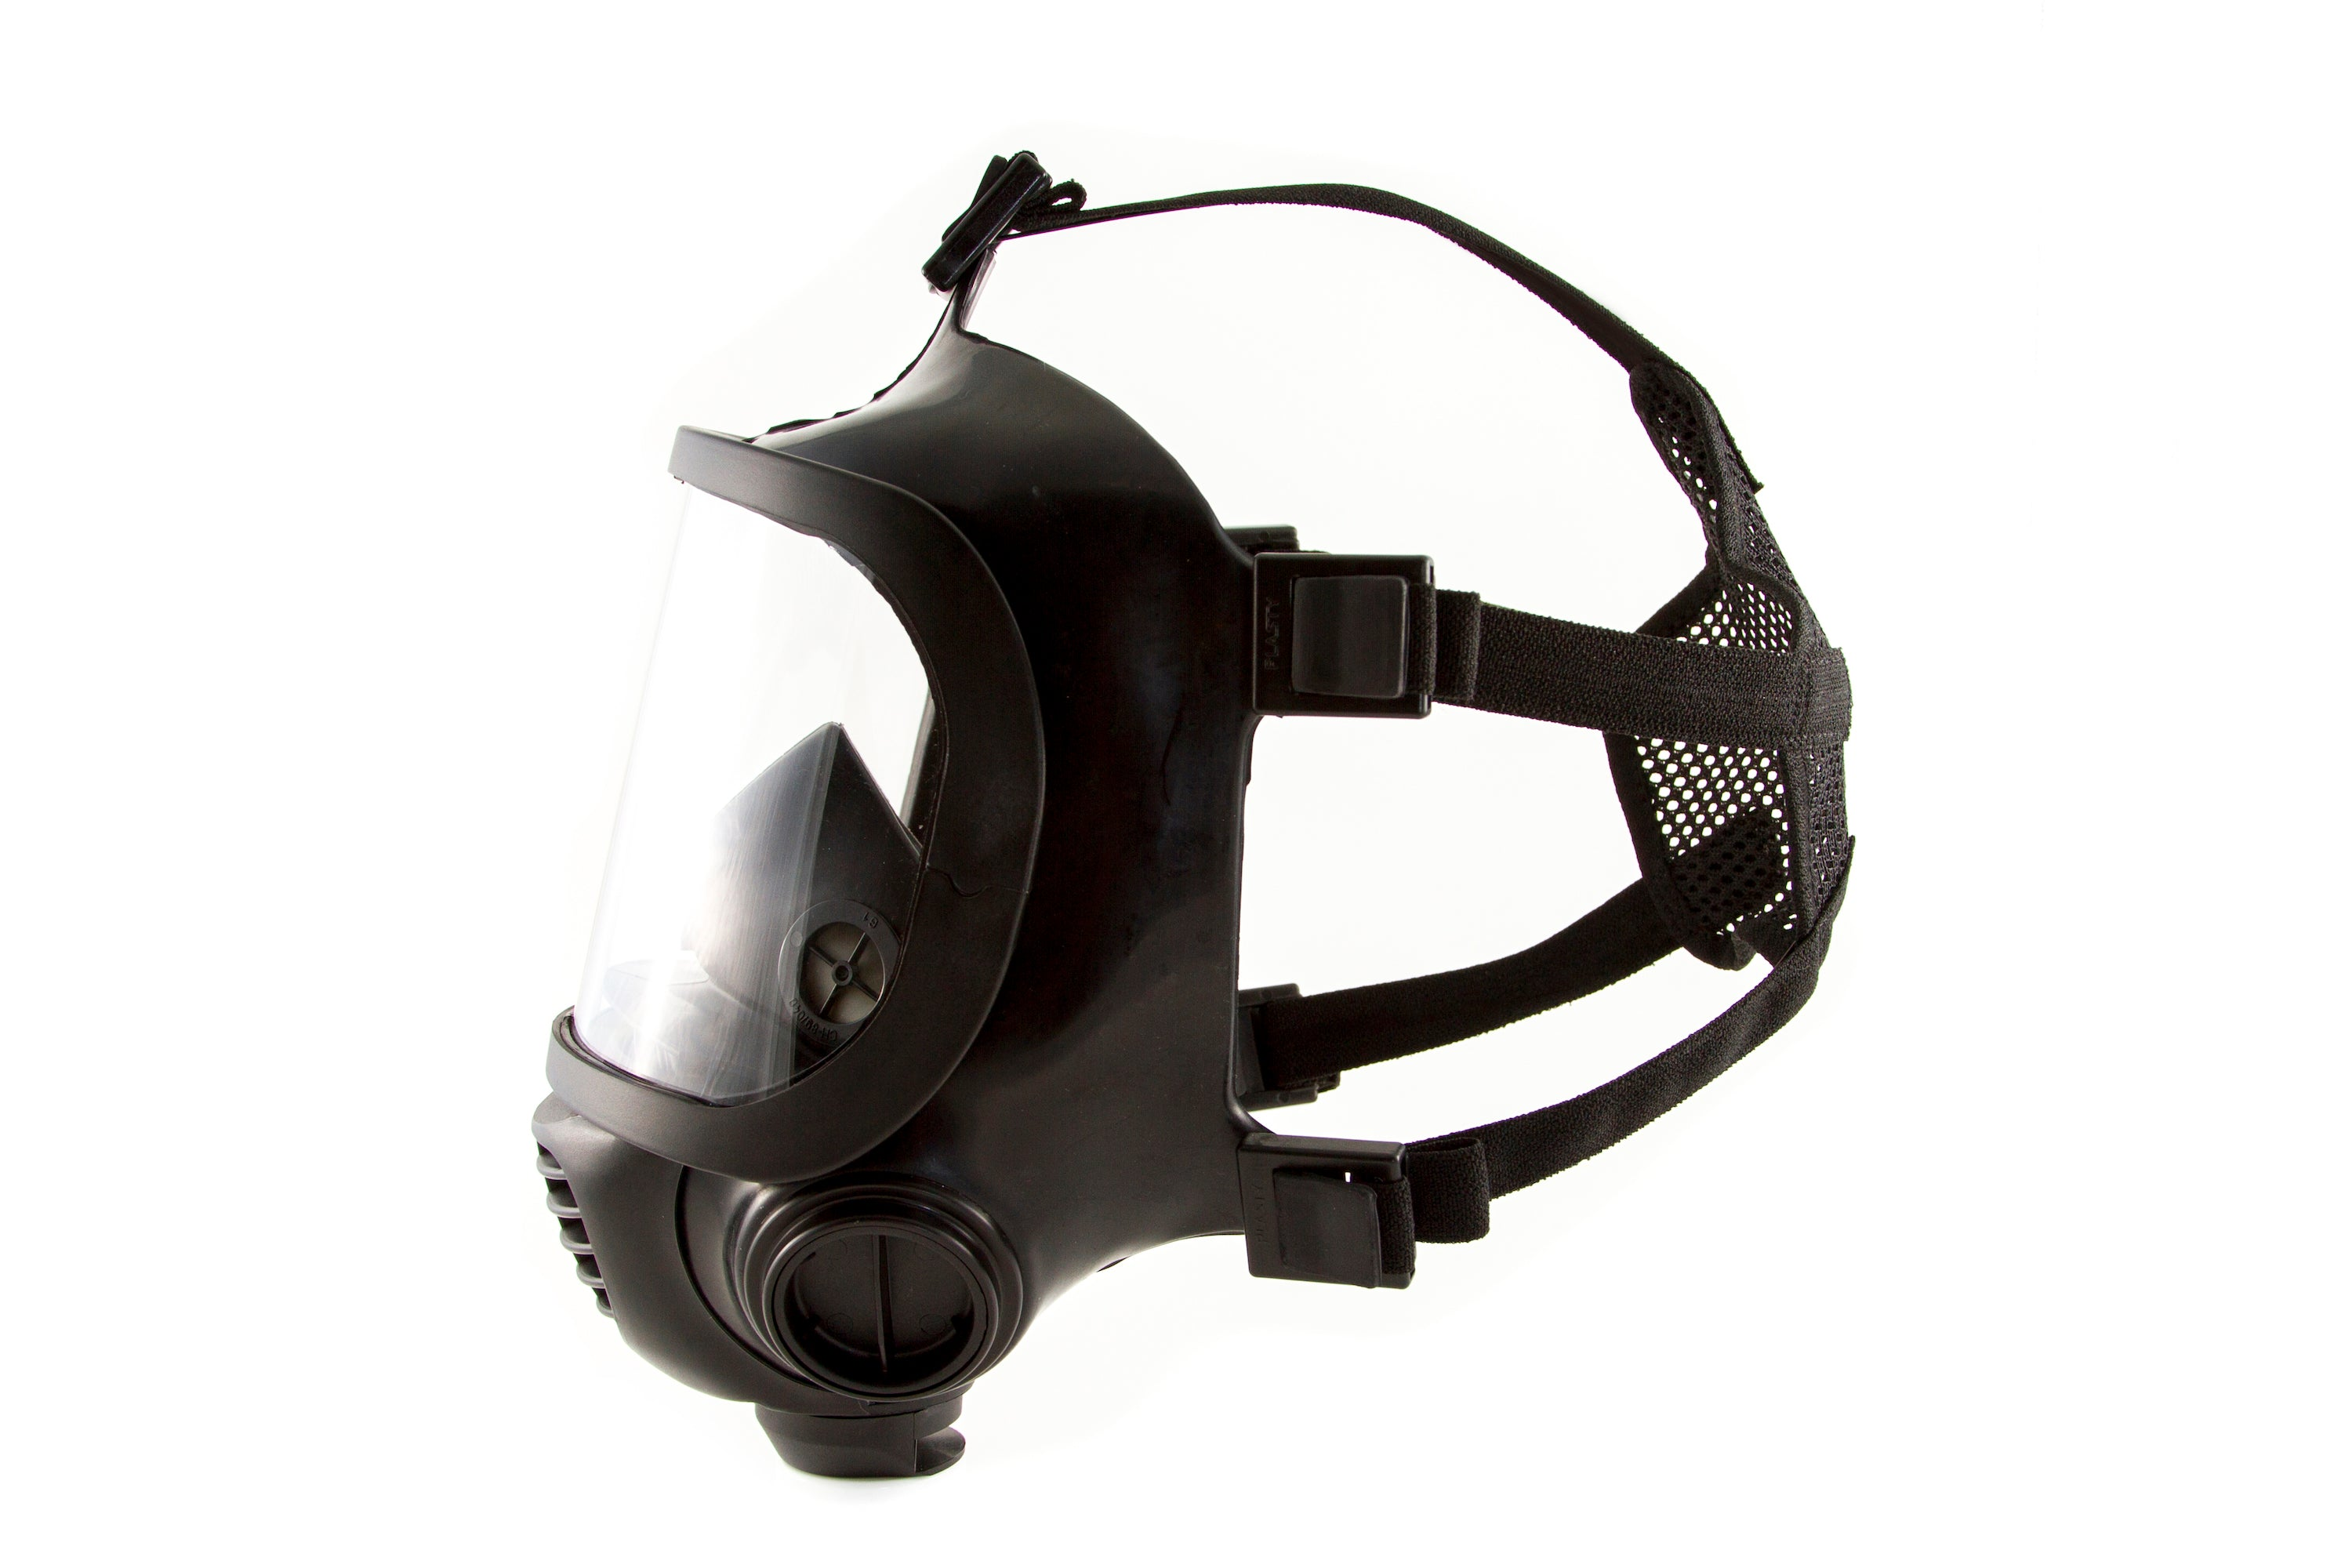 Side view of the CM-6M tactical gas mask